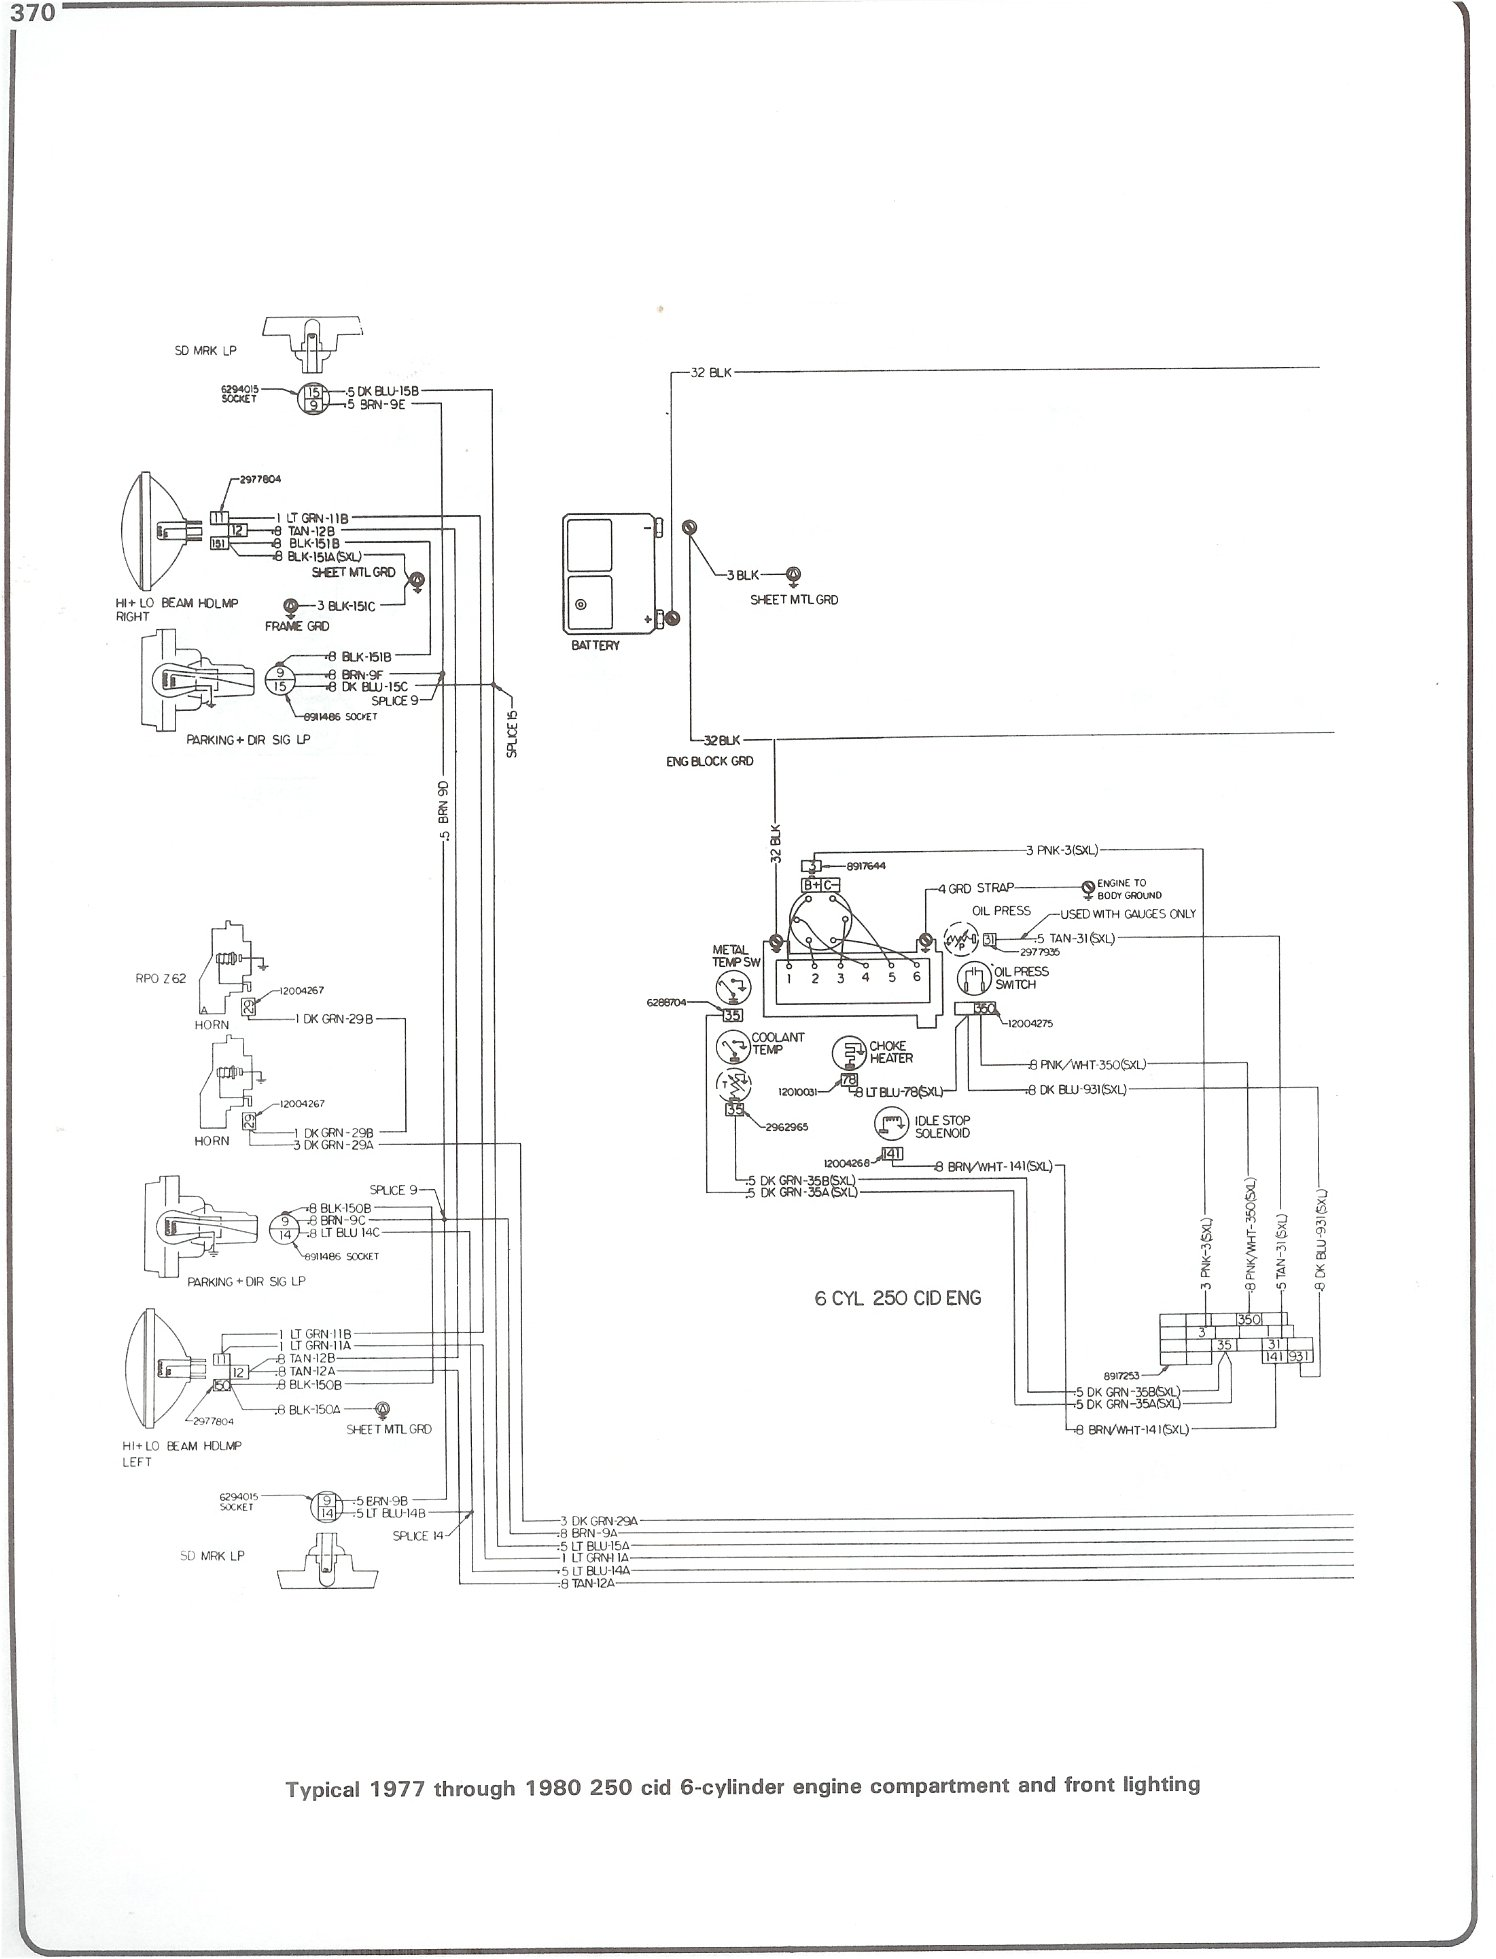 1987 Chevy Camaro Alternator Wiring Diagram Library Ford F 150 1972 V8 Complete 73 87 Diagrams 1985 77 80 250 I6 Engine